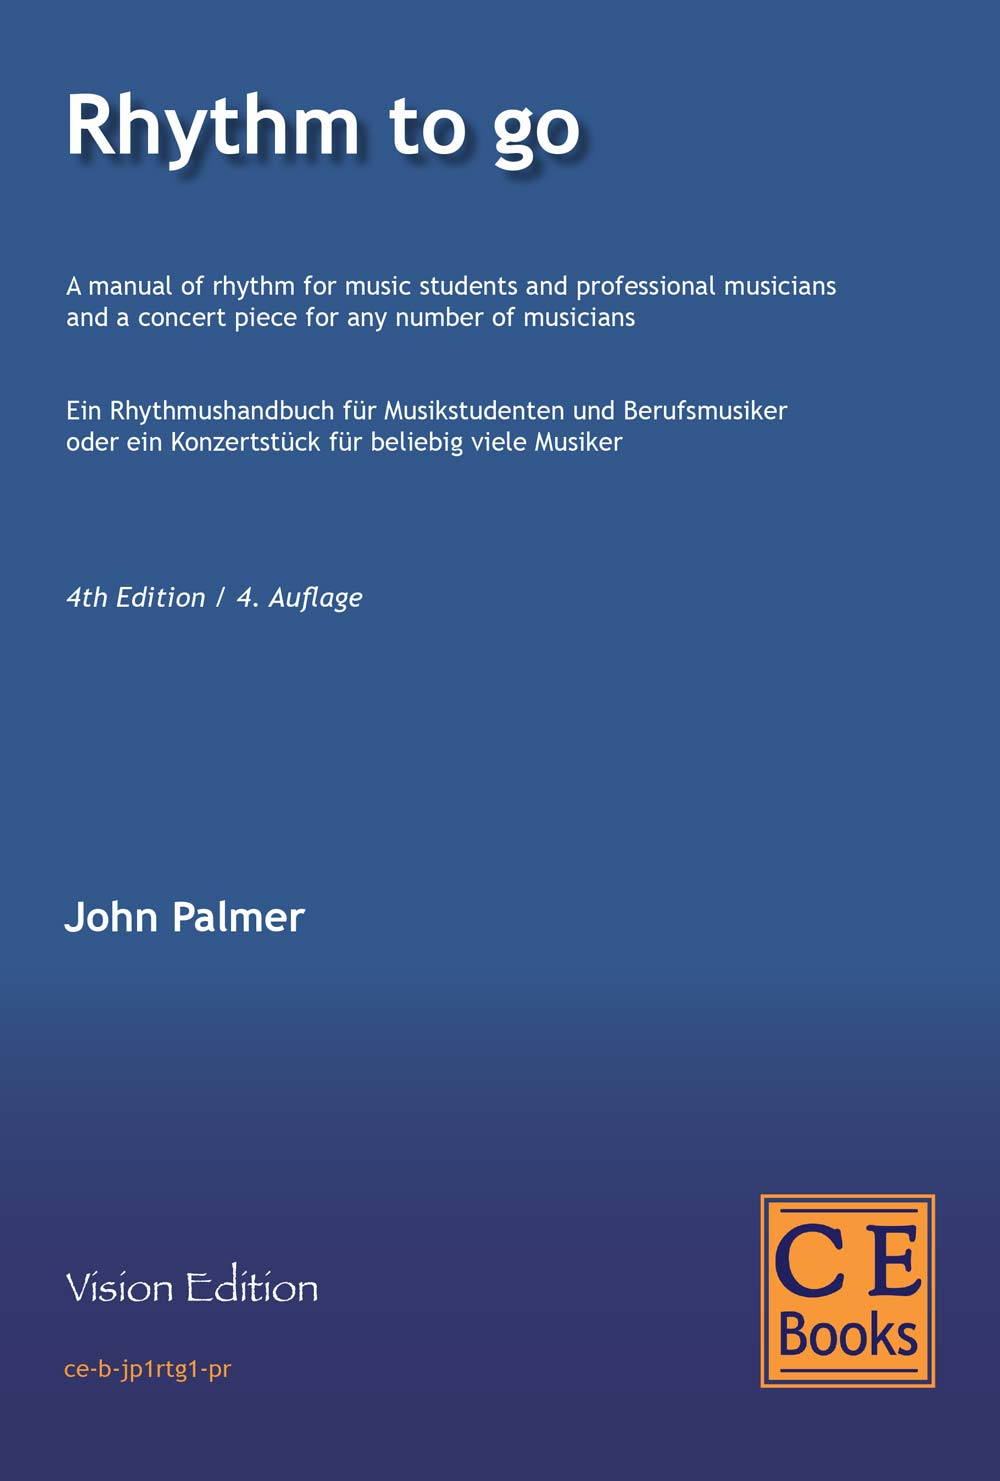 Rhythm to go A manual of rhythm for music students and professional musicians and a concert piece for any number of musicians John Palmer Fourth Edition